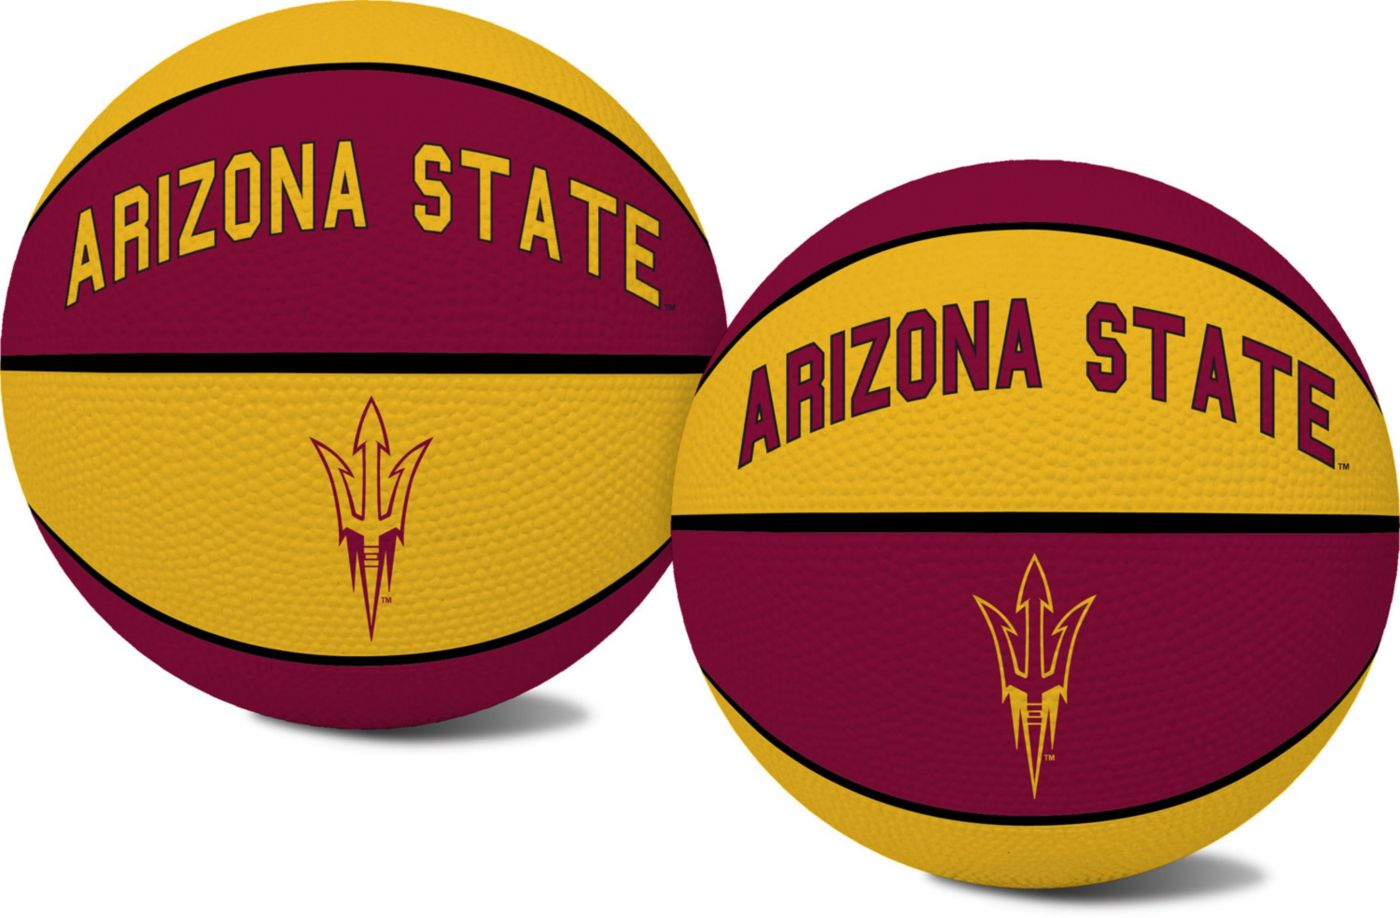 Rawlings Arizona State Sun Devils Youth-Sized Alley Oop Rubber Basketball